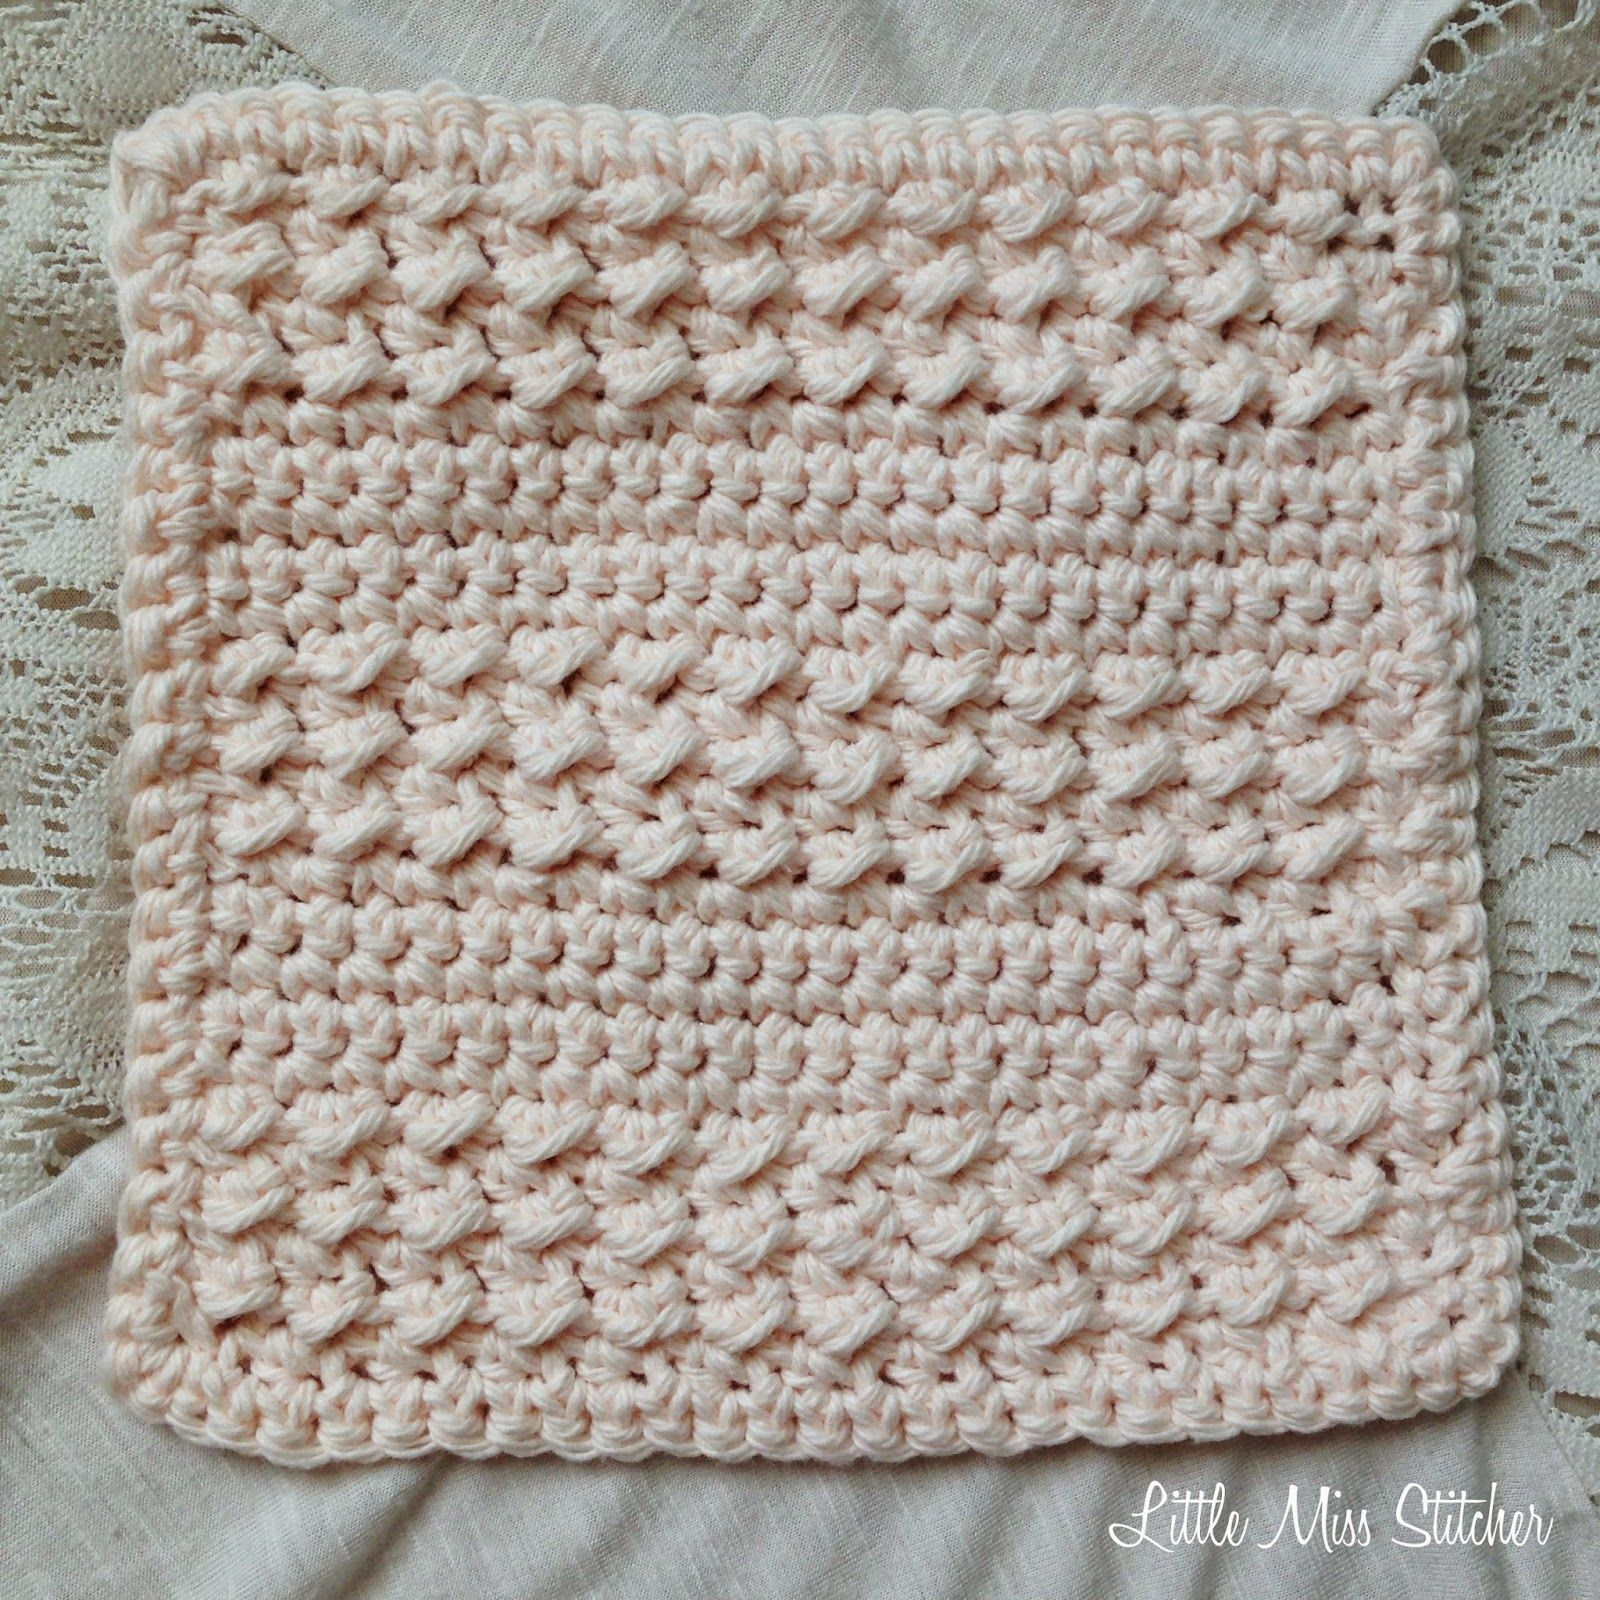 About 2 Months Ago I Share 5 Free Knit Dishcloth Patterns Today